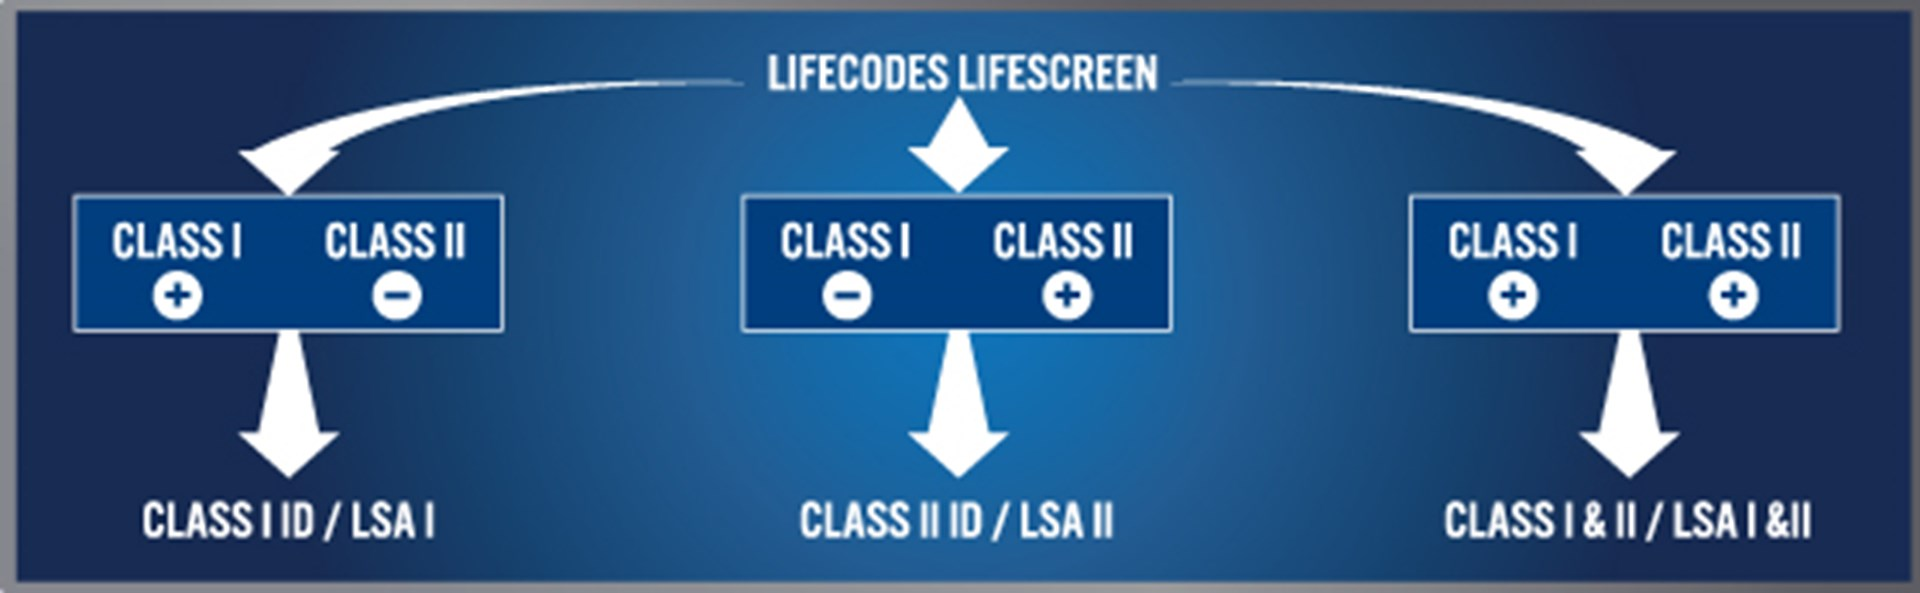 Lifecodes Screen Identification About 1